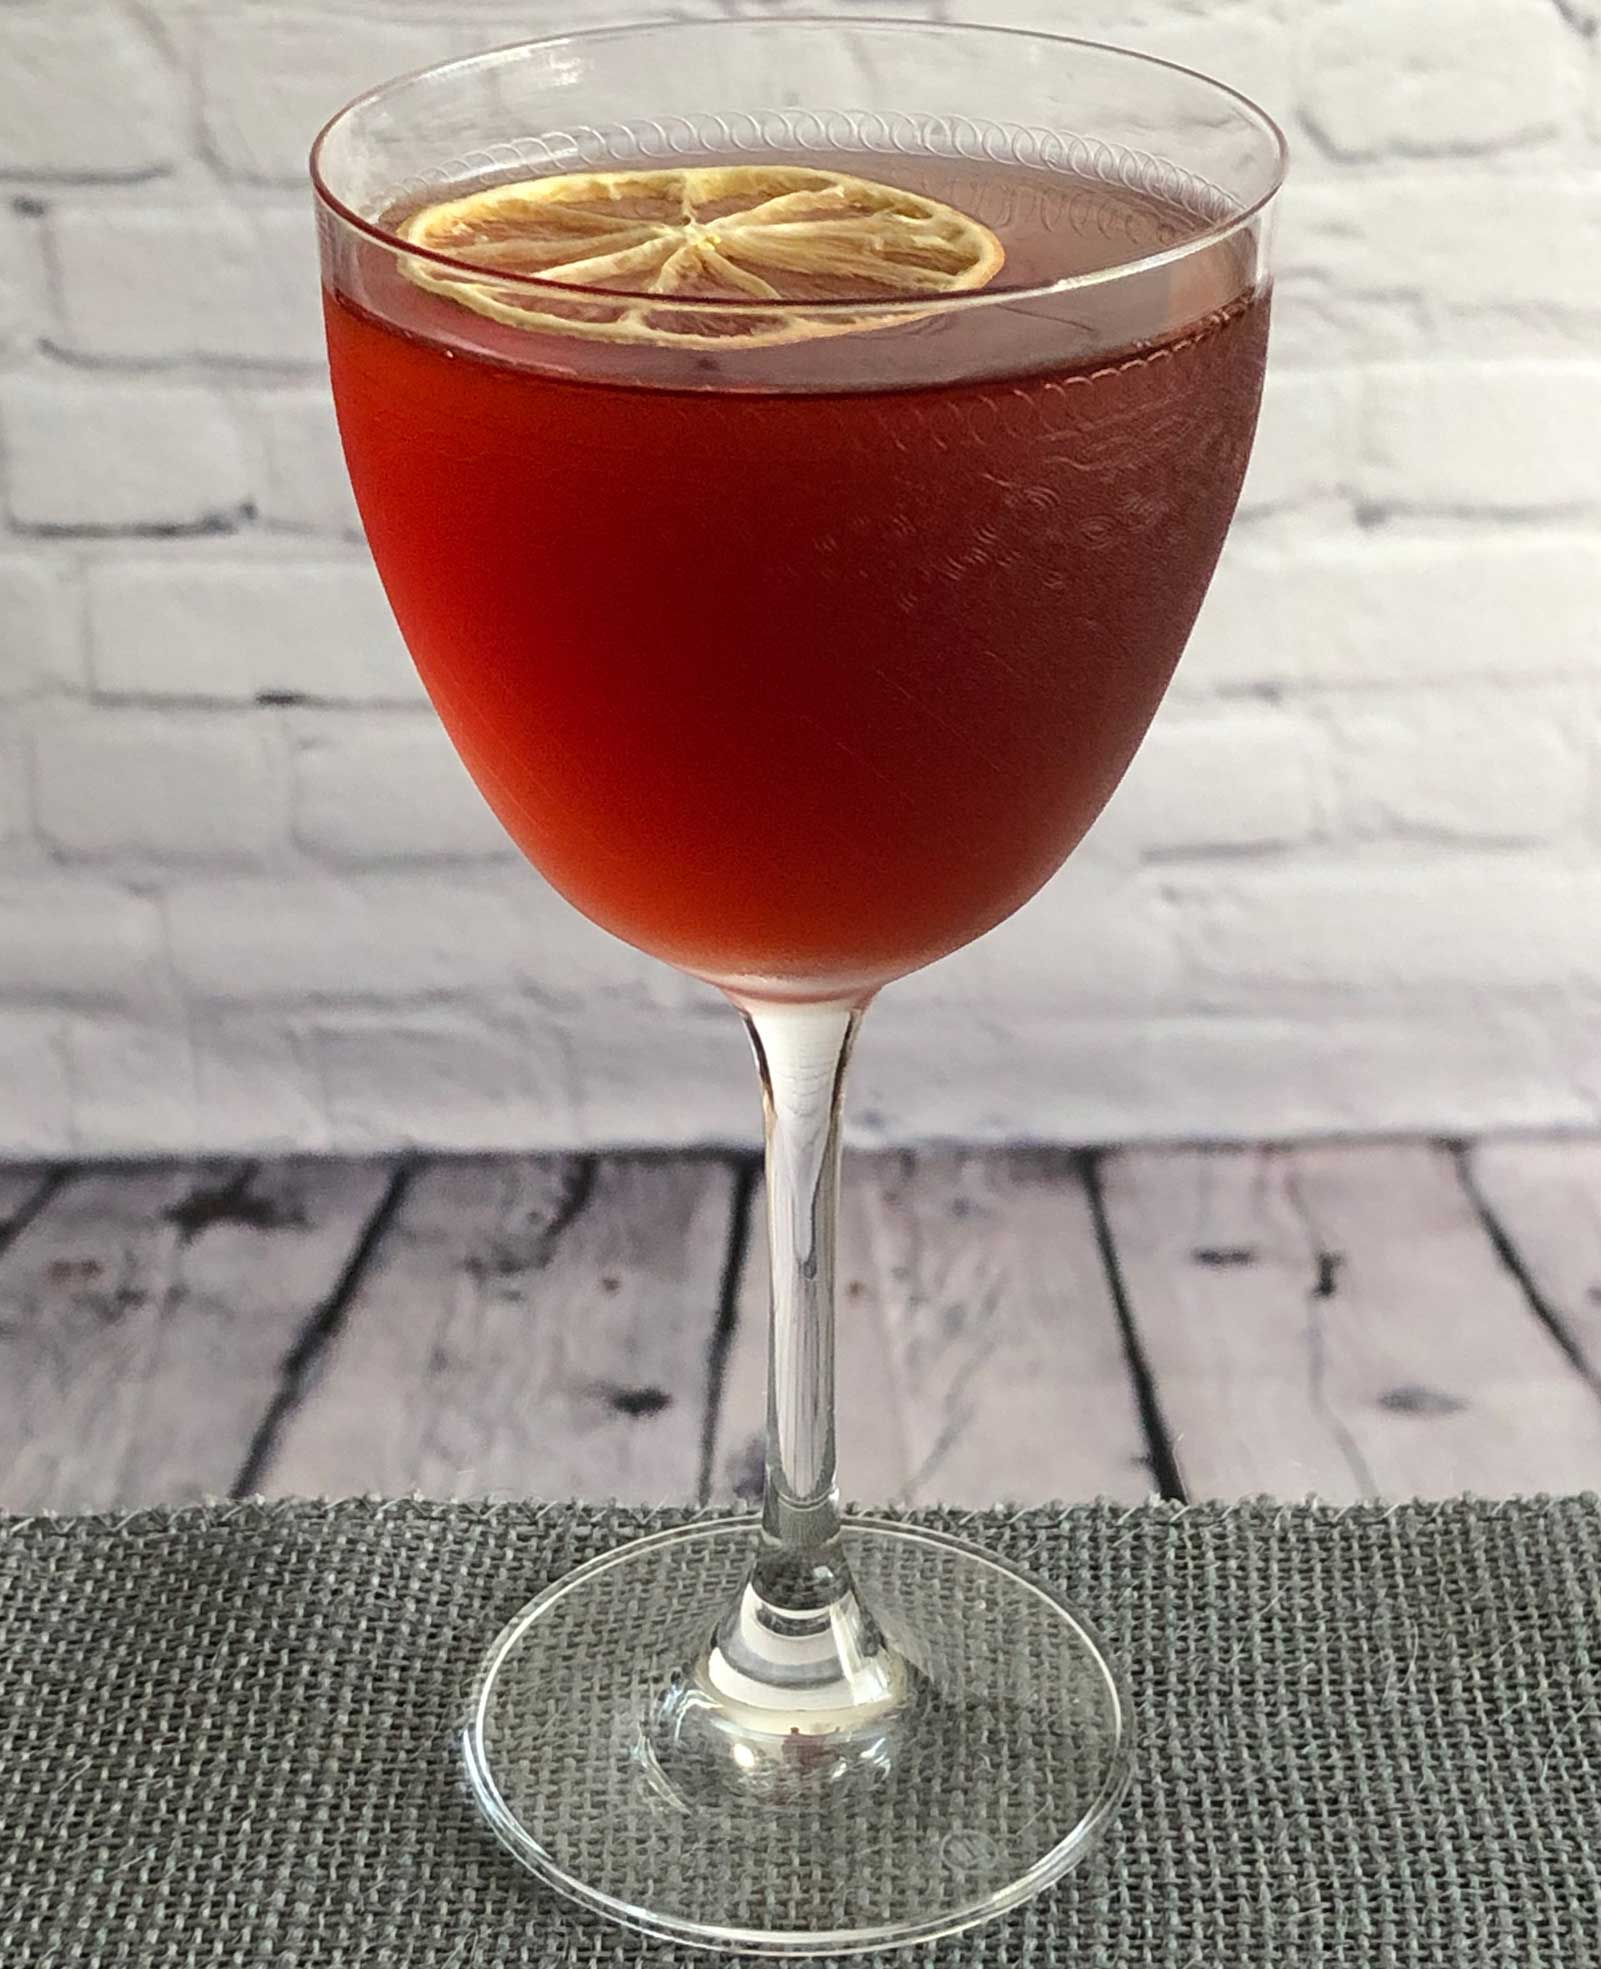 An example of the The Prime Directive no. 2, the mixed drink (cocktail) featuring Dolin Dry Vermouth de Chambéry, Salers Gentian Apéritif, and Byrrh Grand Quinquina; photo by Lee Edwards